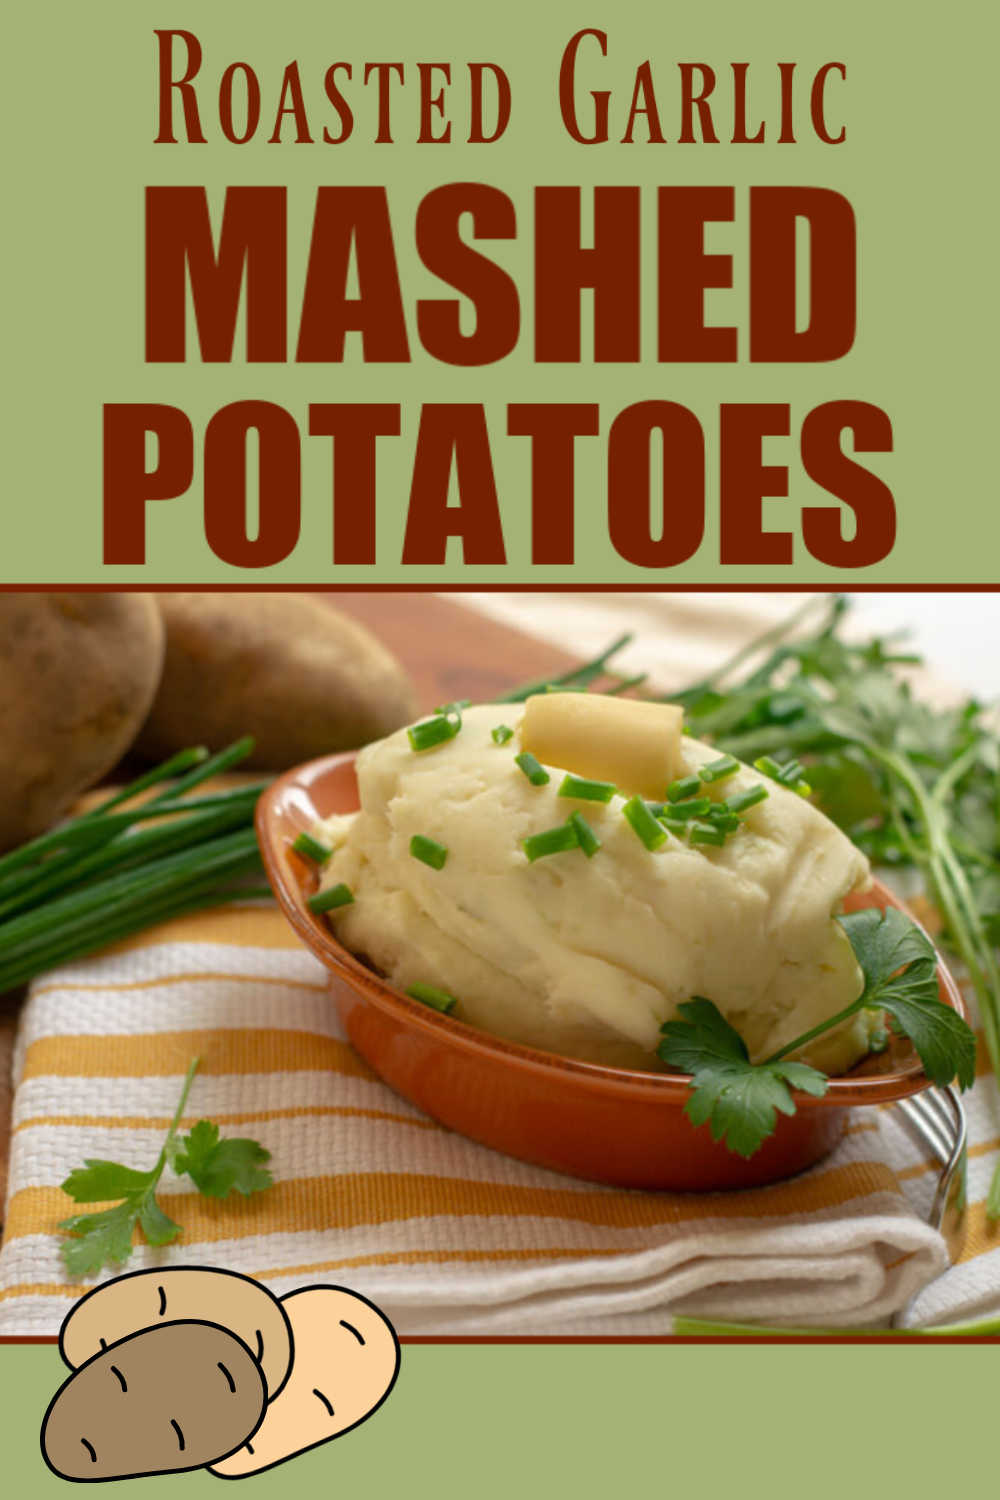 Roasted Garlic Mashed Potatoes with Cream Cheese